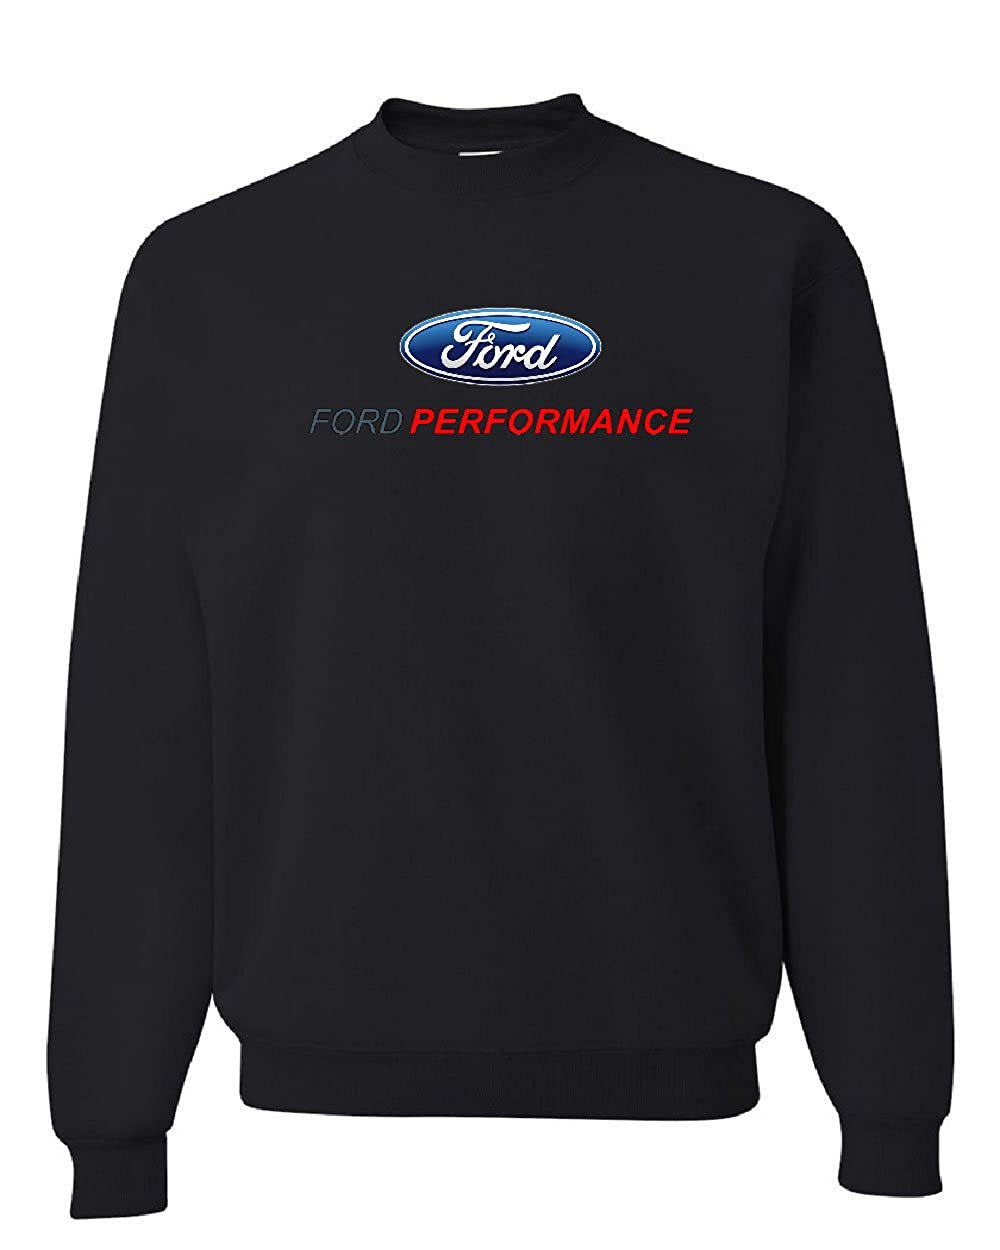 Ford Performance Crew Neck Sweatshirt Ford Mustang GT ST Racing